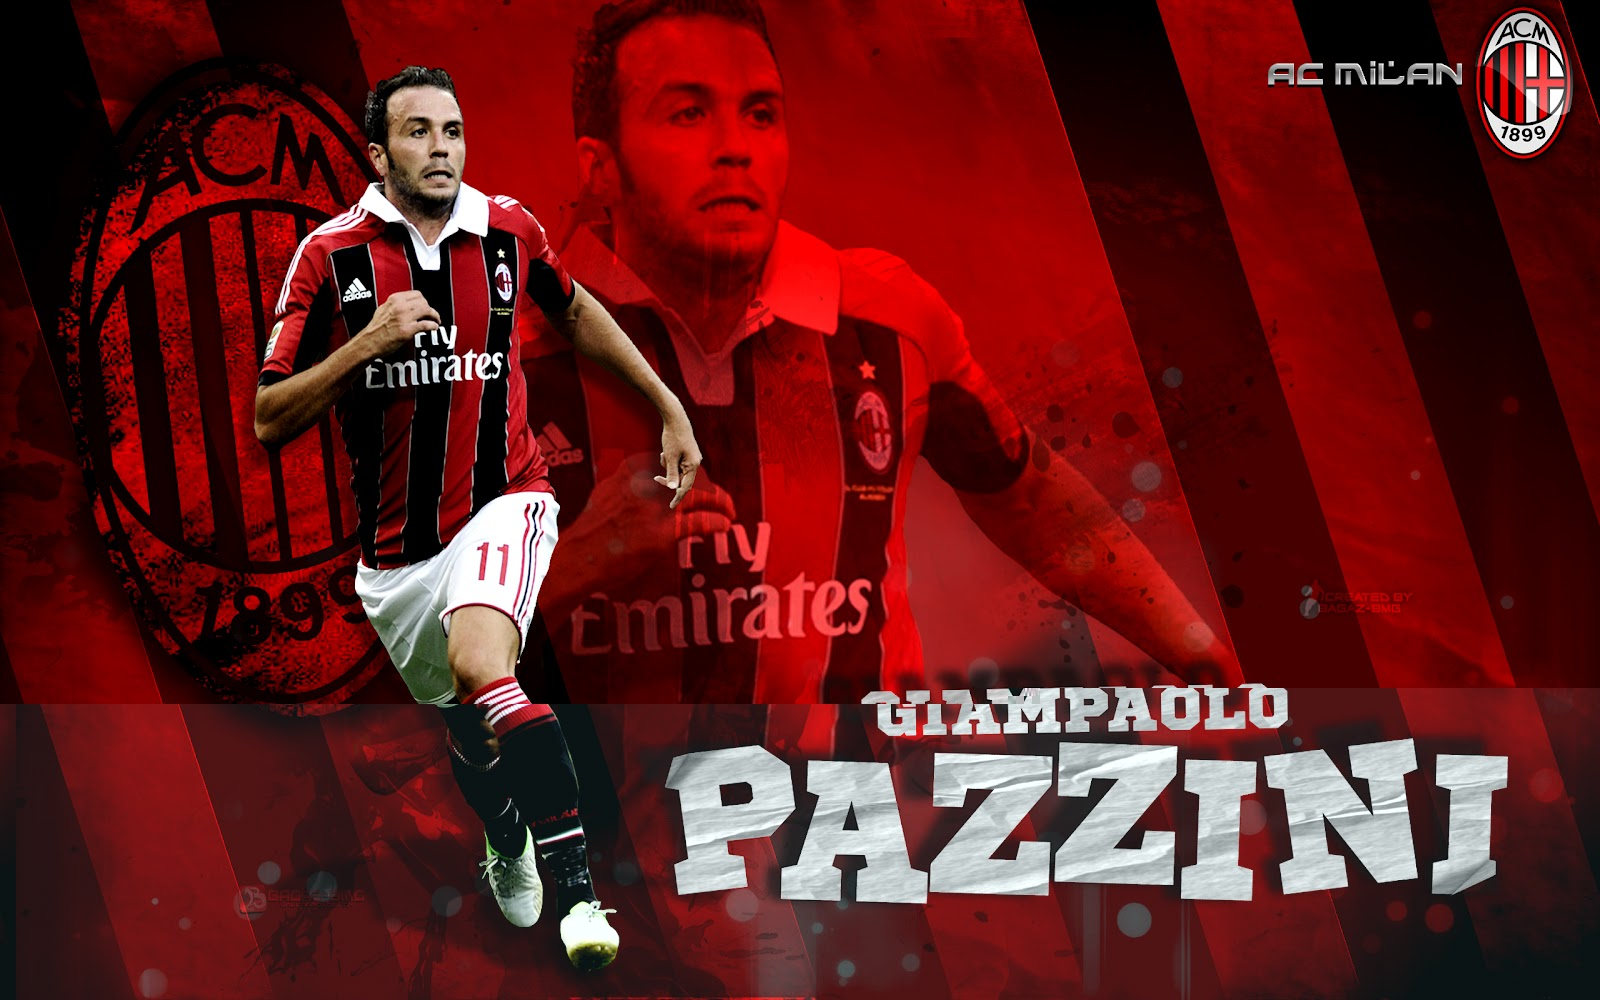 Tags AC Milan Wallpapers HD High Resolution High Definition High 1600x1000